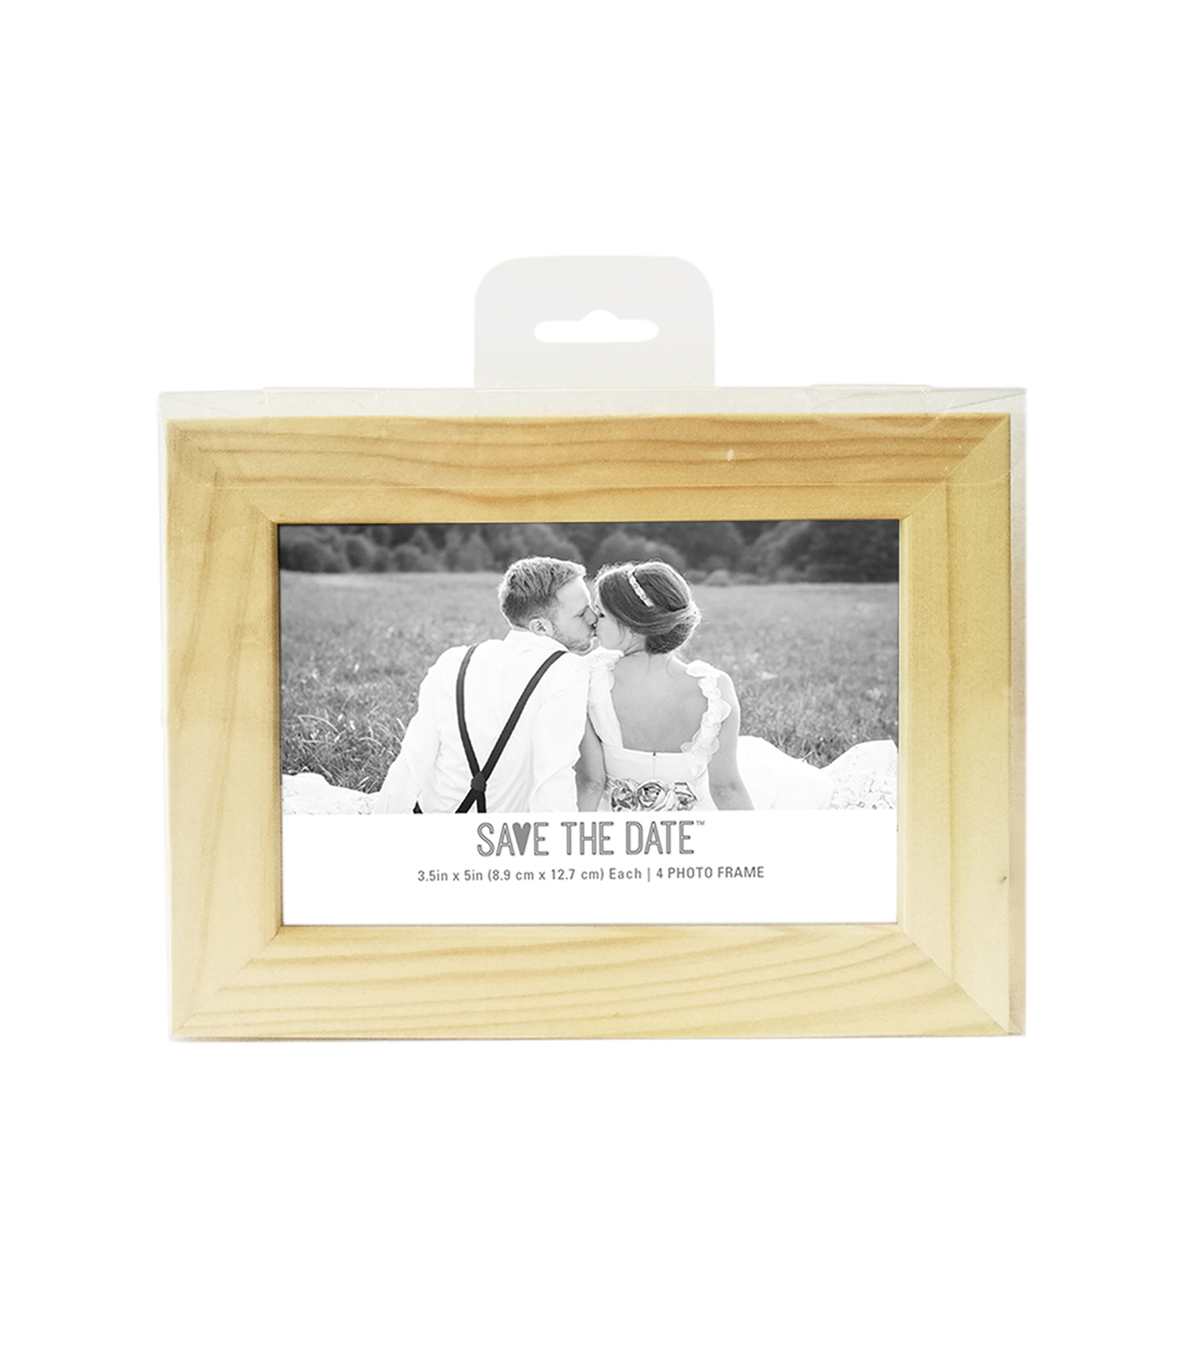 Save The Date Wood 4 Pk Frames 35x5 Joann